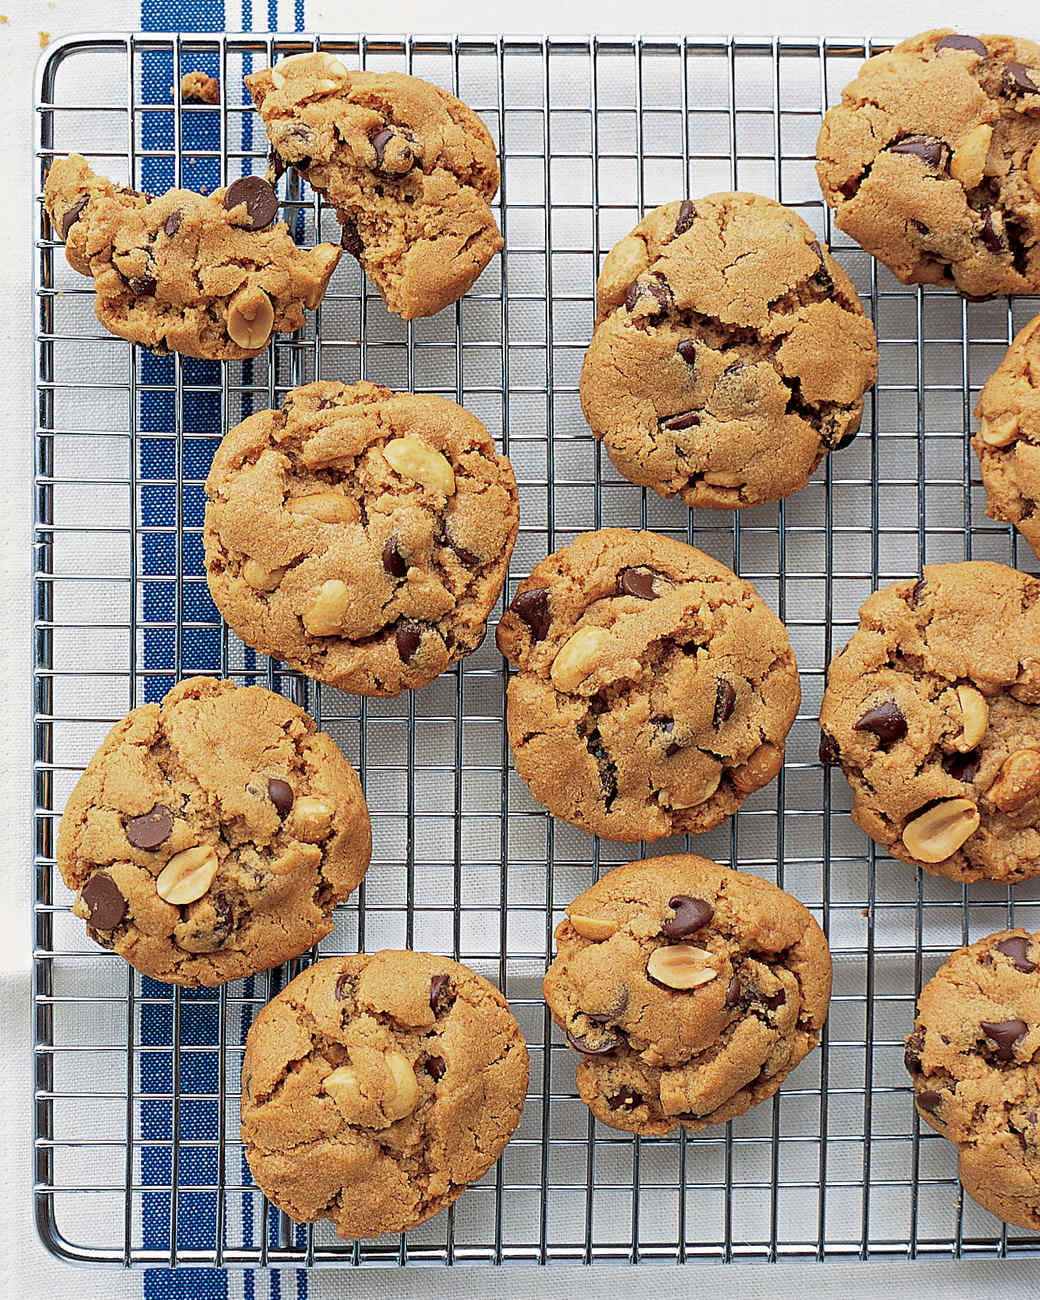 peanut-chocolate-cookies-0305-mea101198.jpg